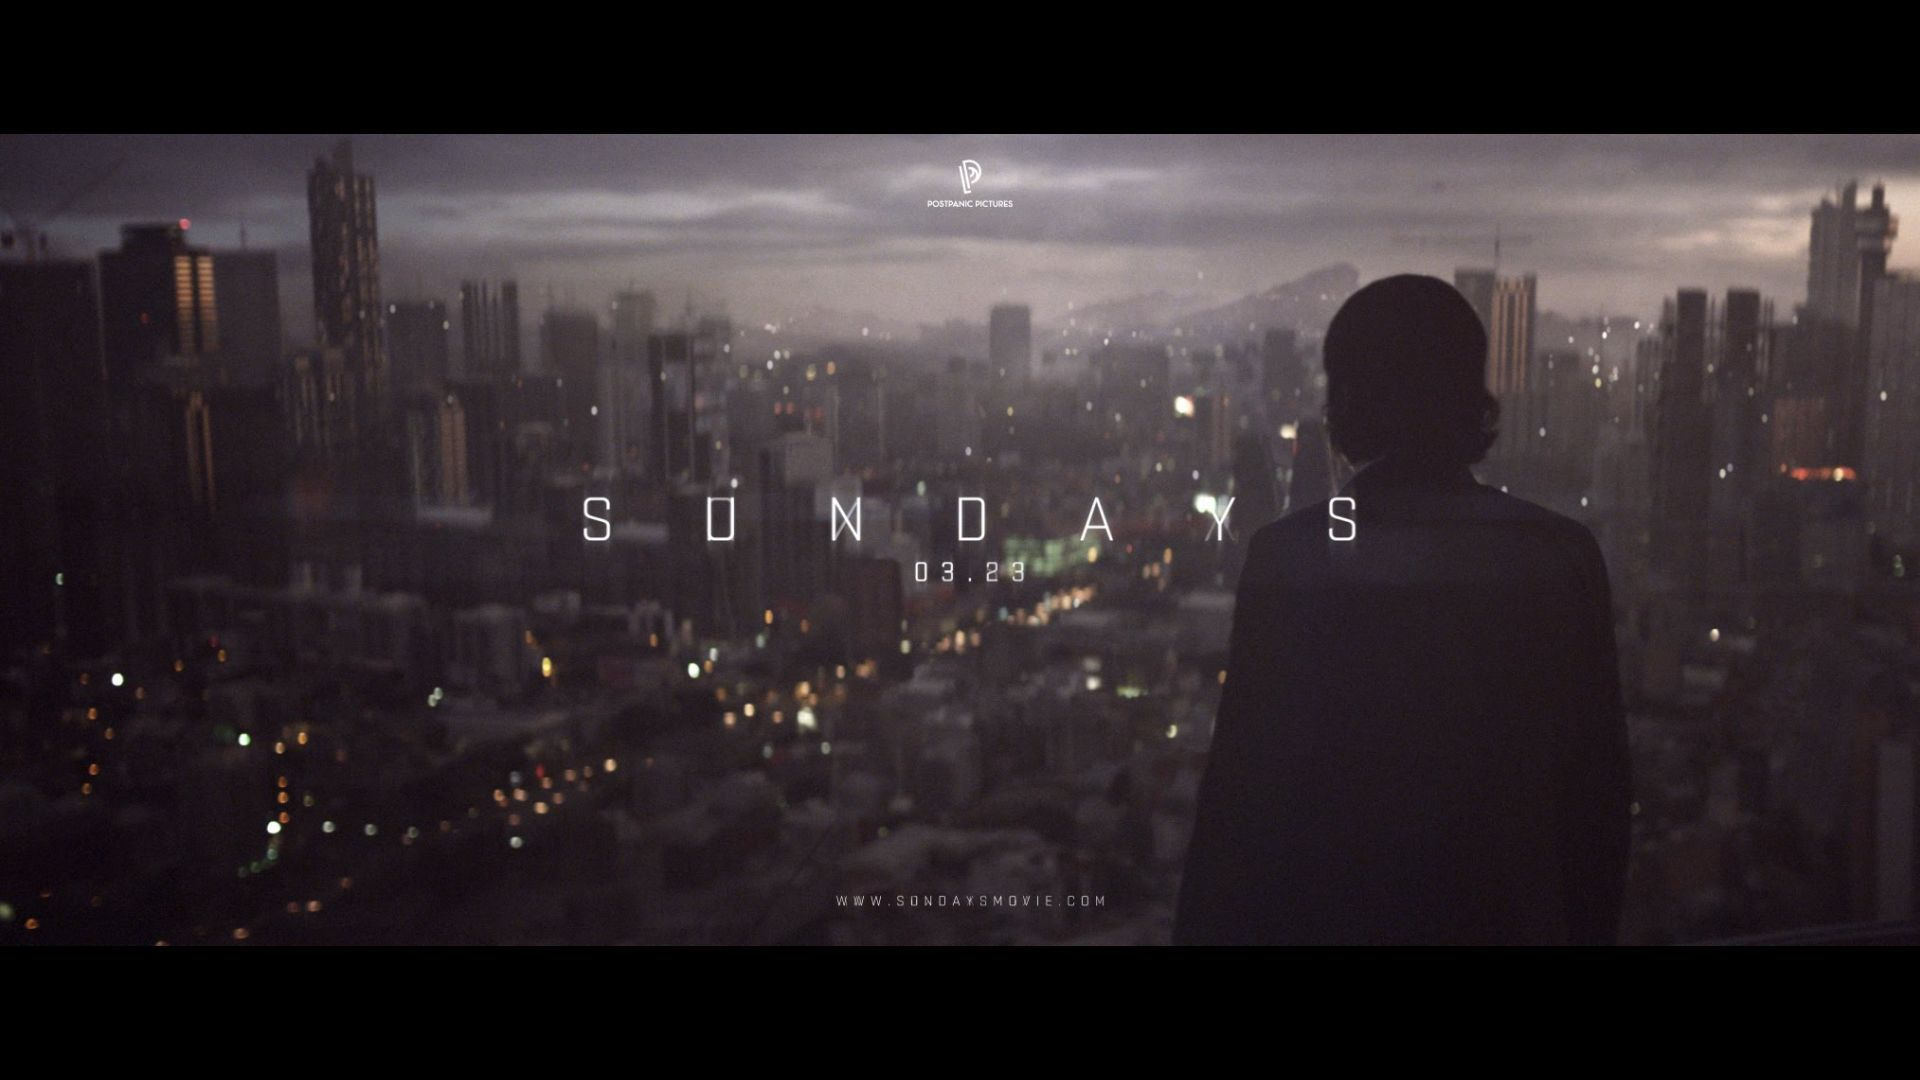 Warner Bros. Plan to Adapt Mischa Rozema's short film 'Sundays'